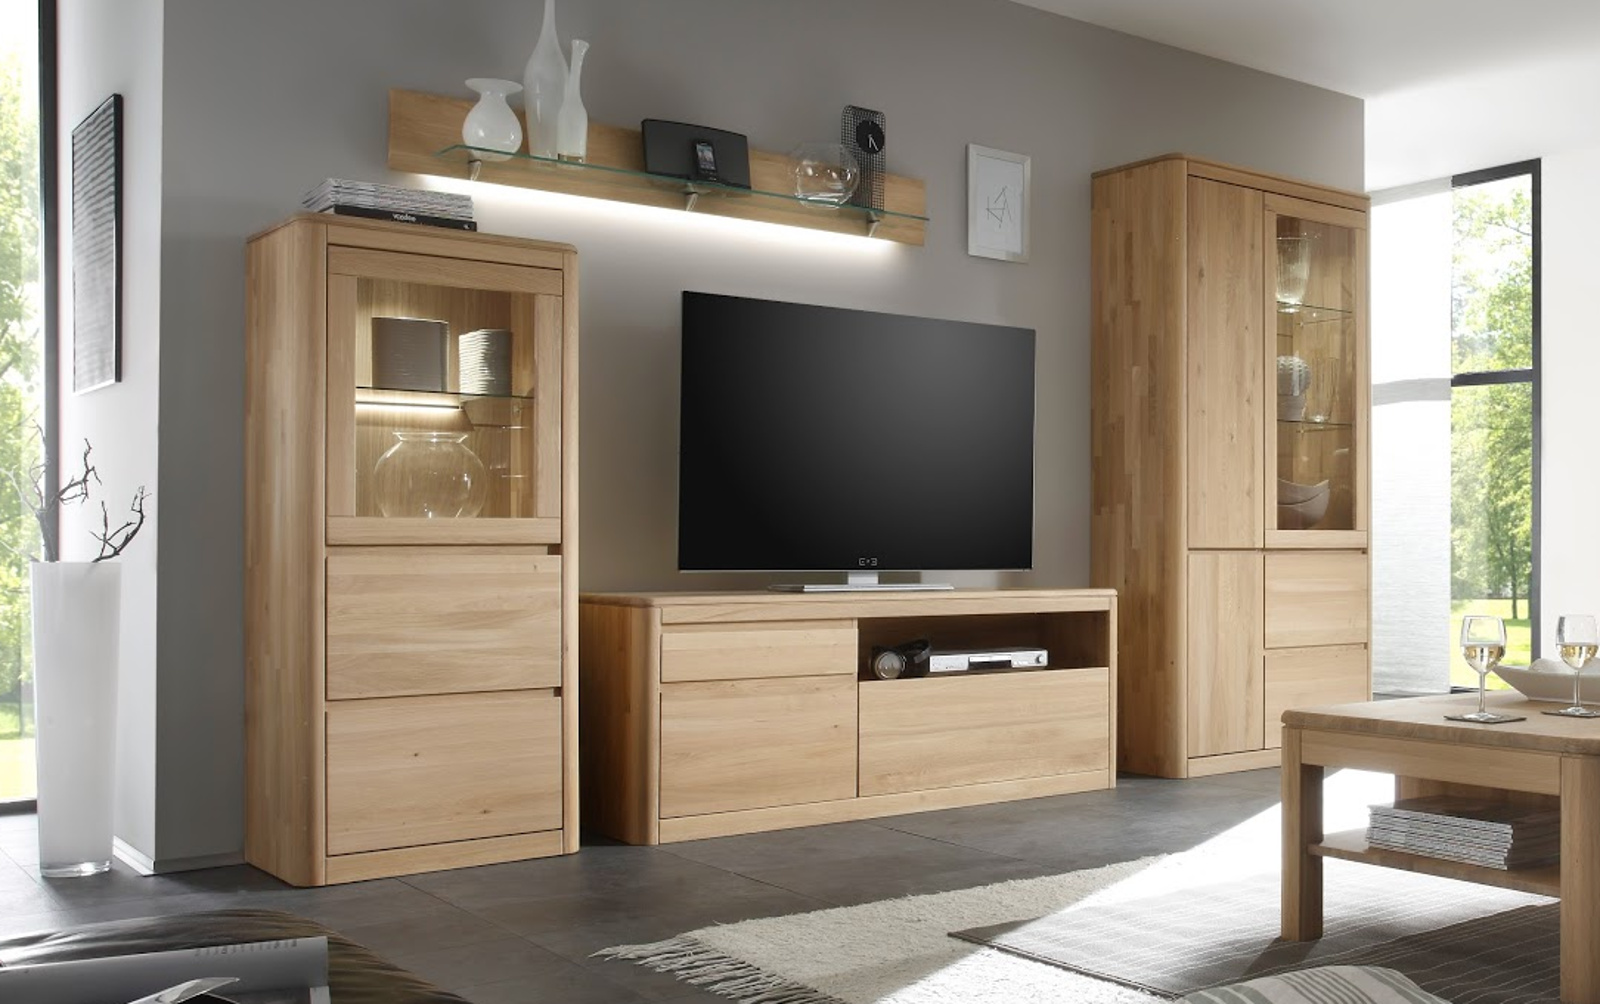 wandboard wandregal mit glasablage naturell n1. Black Bedroom Furniture Sets. Home Design Ideas